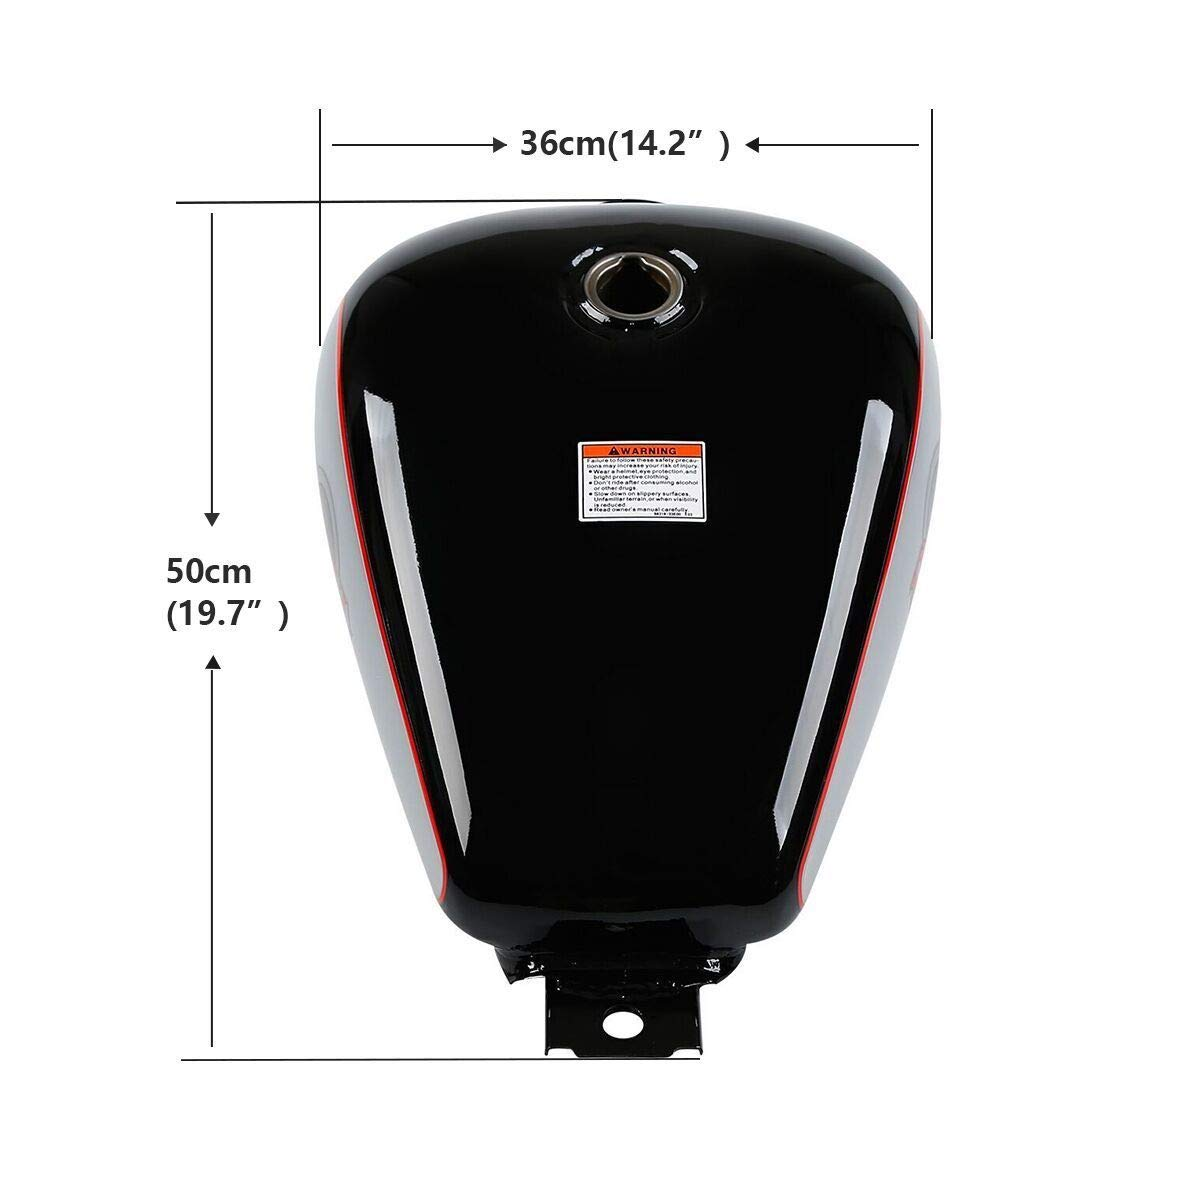 TCMT Motorcycle 3.4 gallons Fuel Gas Tank Fits For Honda CMX250 ...